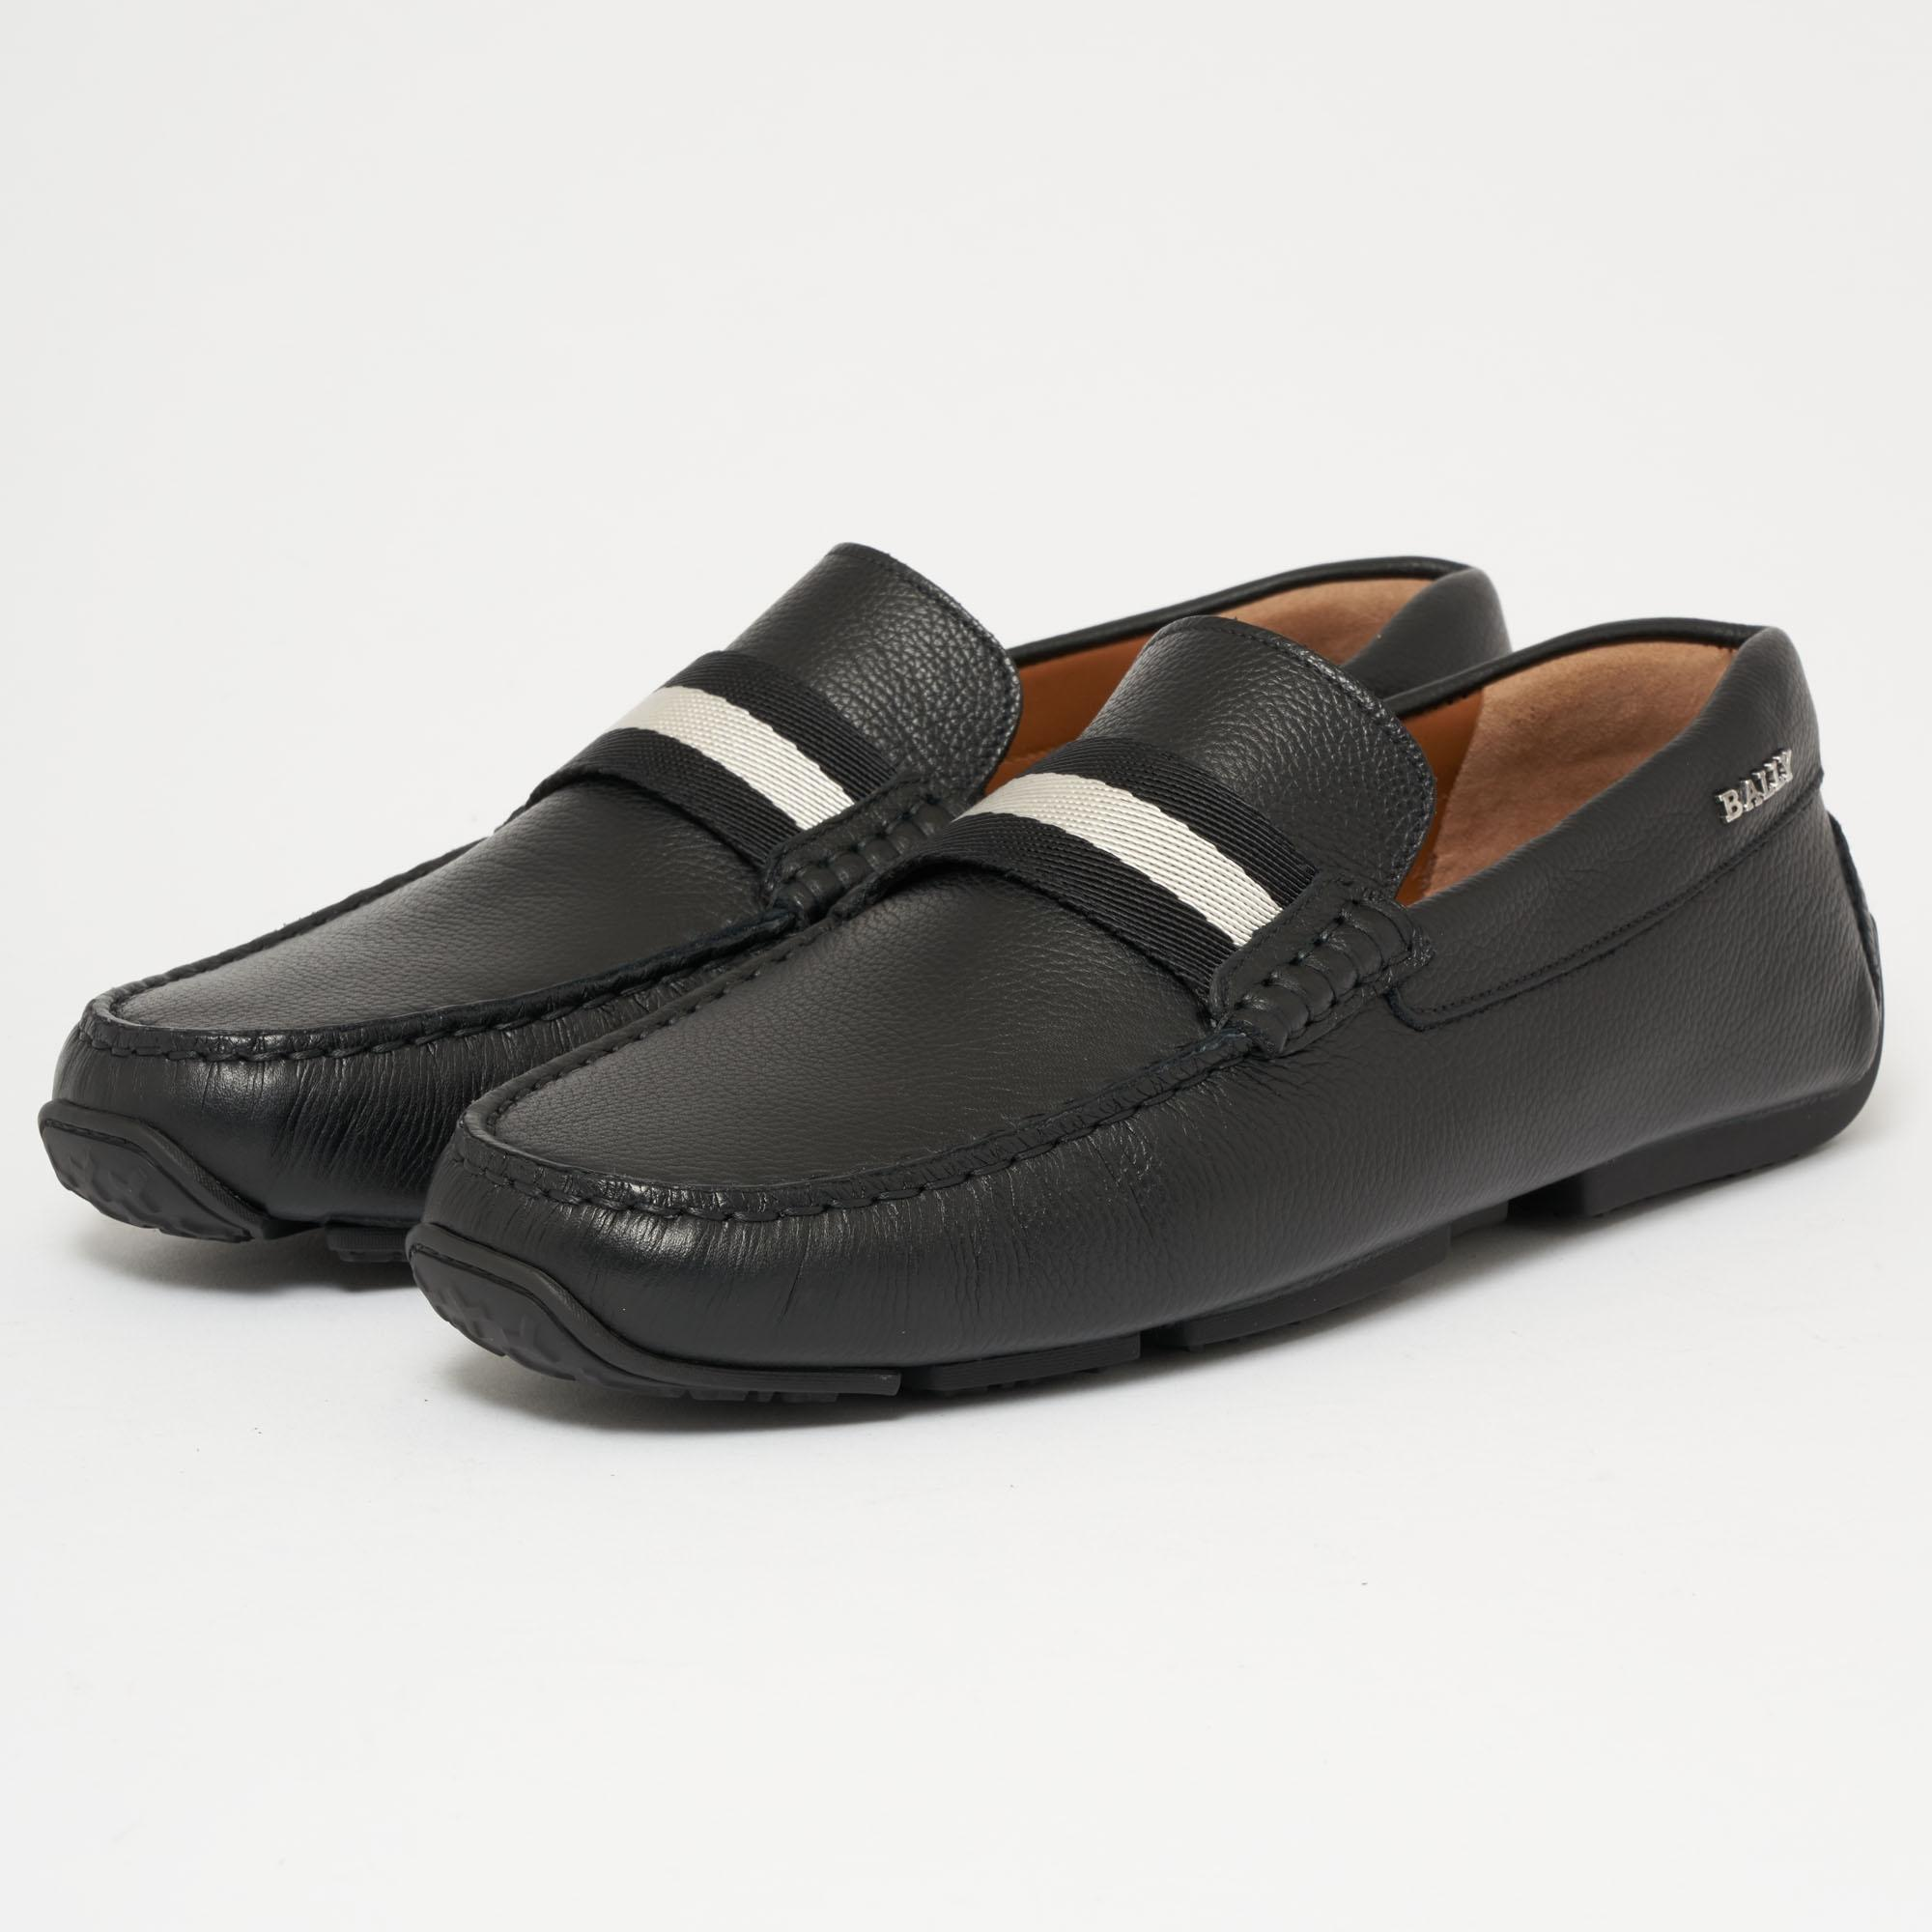 Pearce Black, Mens leather driver in black Bally